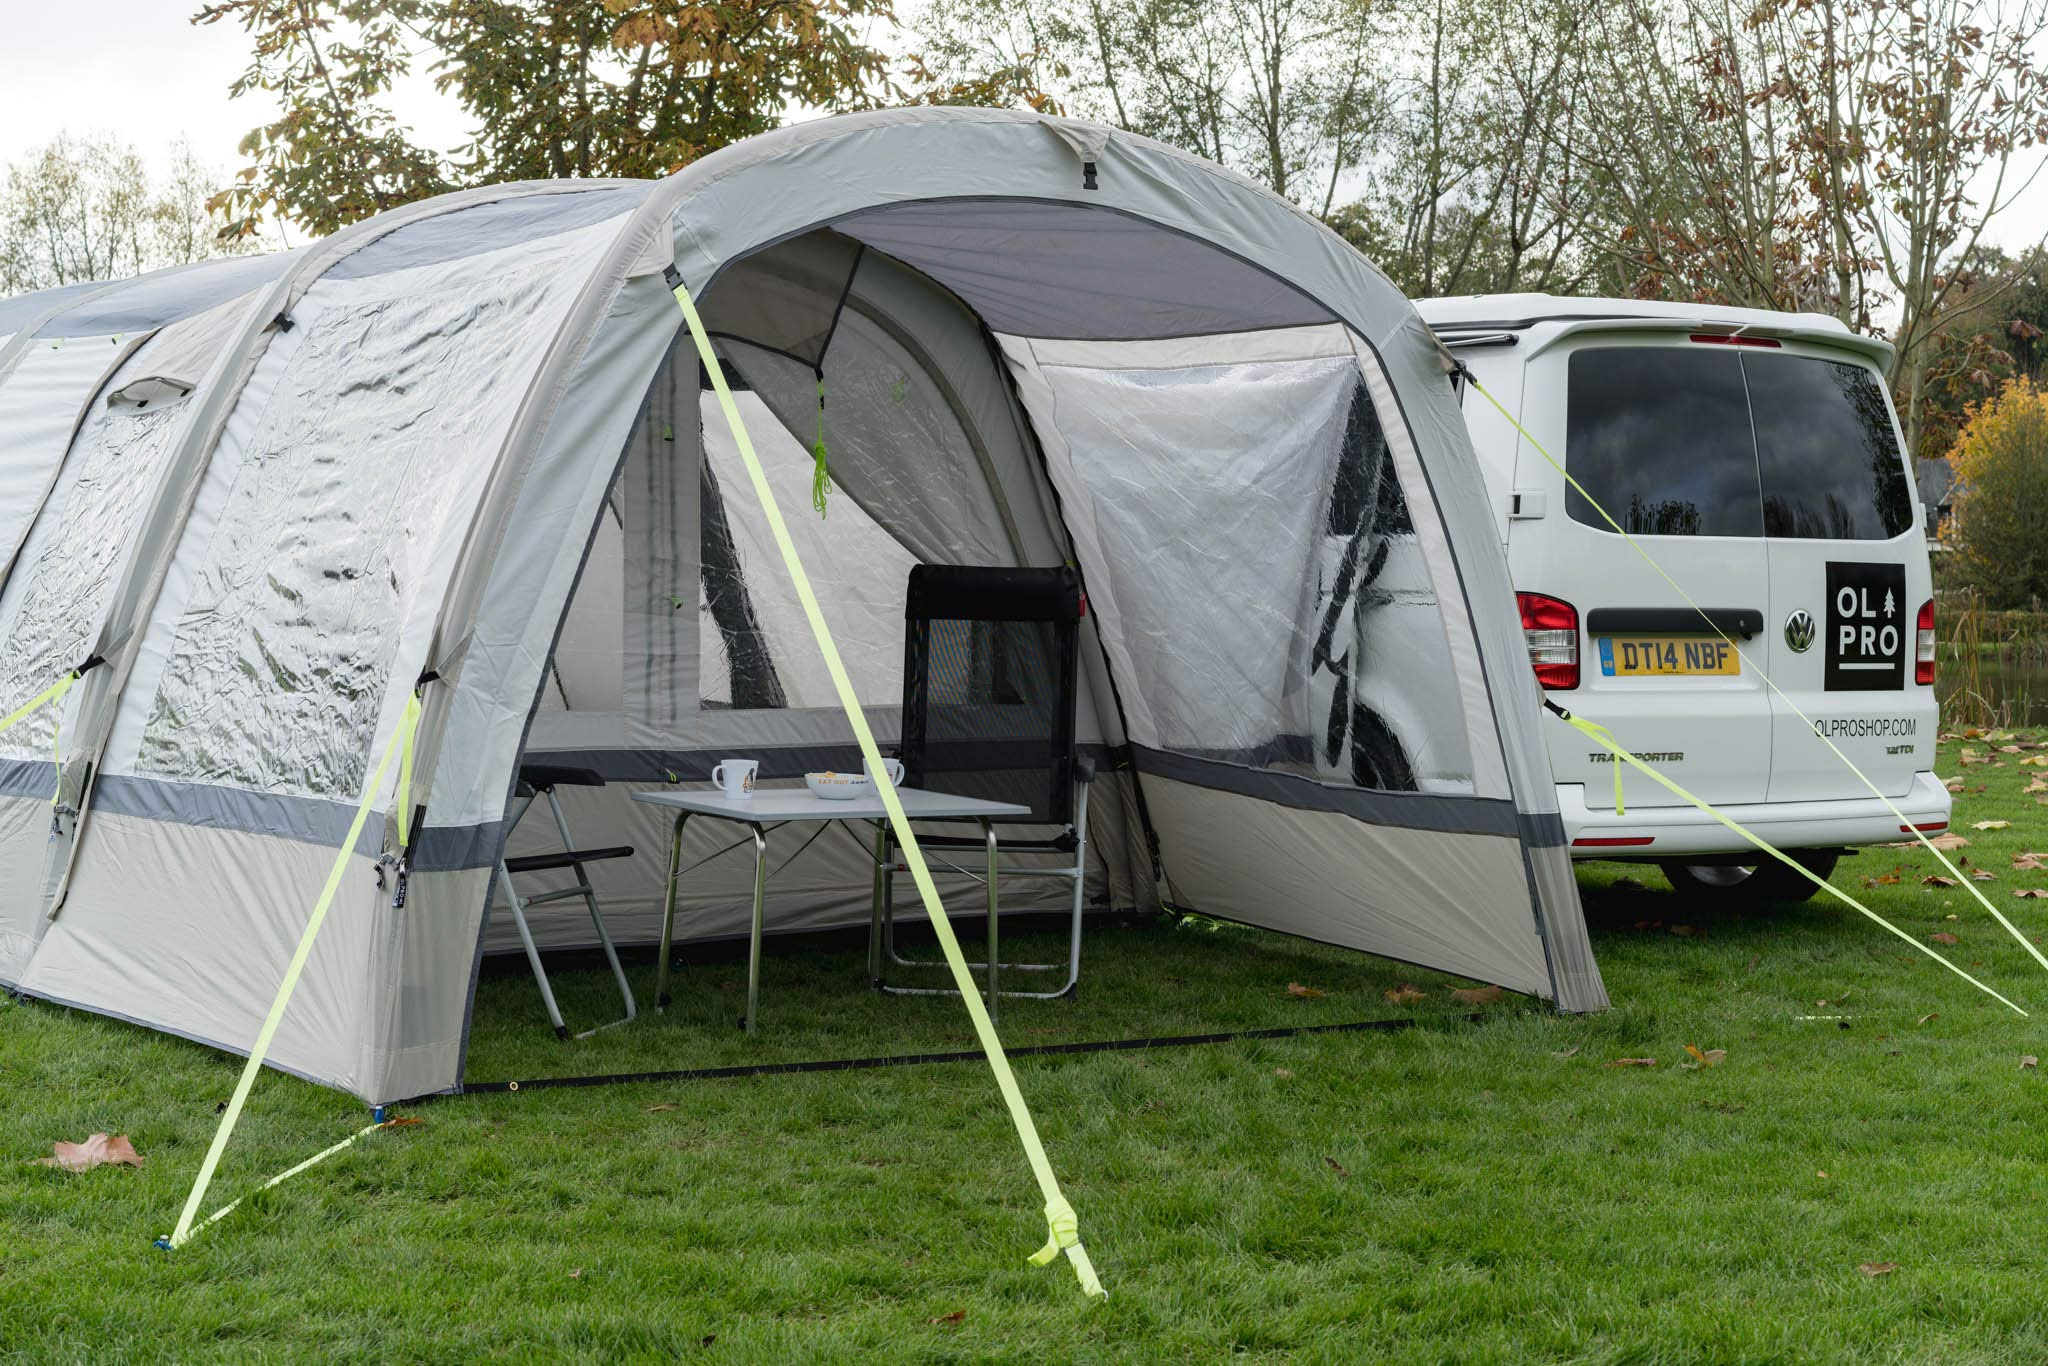 OLPRO Outdoor Leisure Products Cocoon Extension 3.5m x 1.8m Inflatable Drive Away Campervan Awning Porch Extension for Cocoon Breeze Sage Green & Chalk 3